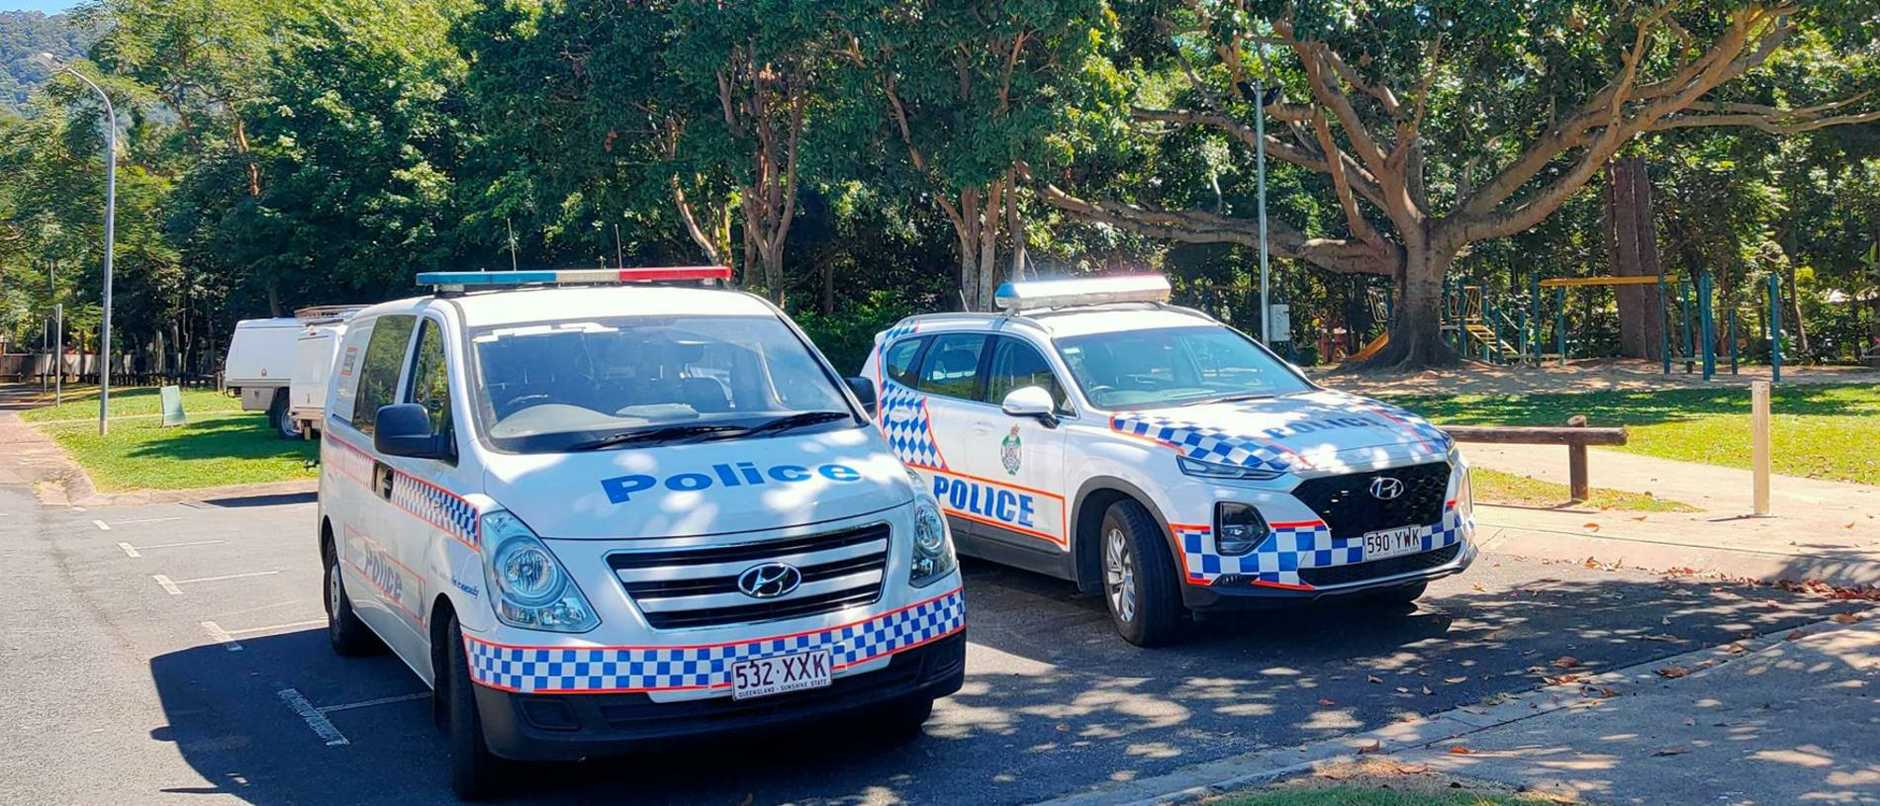 Police have established a crime scene in a suburban creek after reports of an assault on a child.